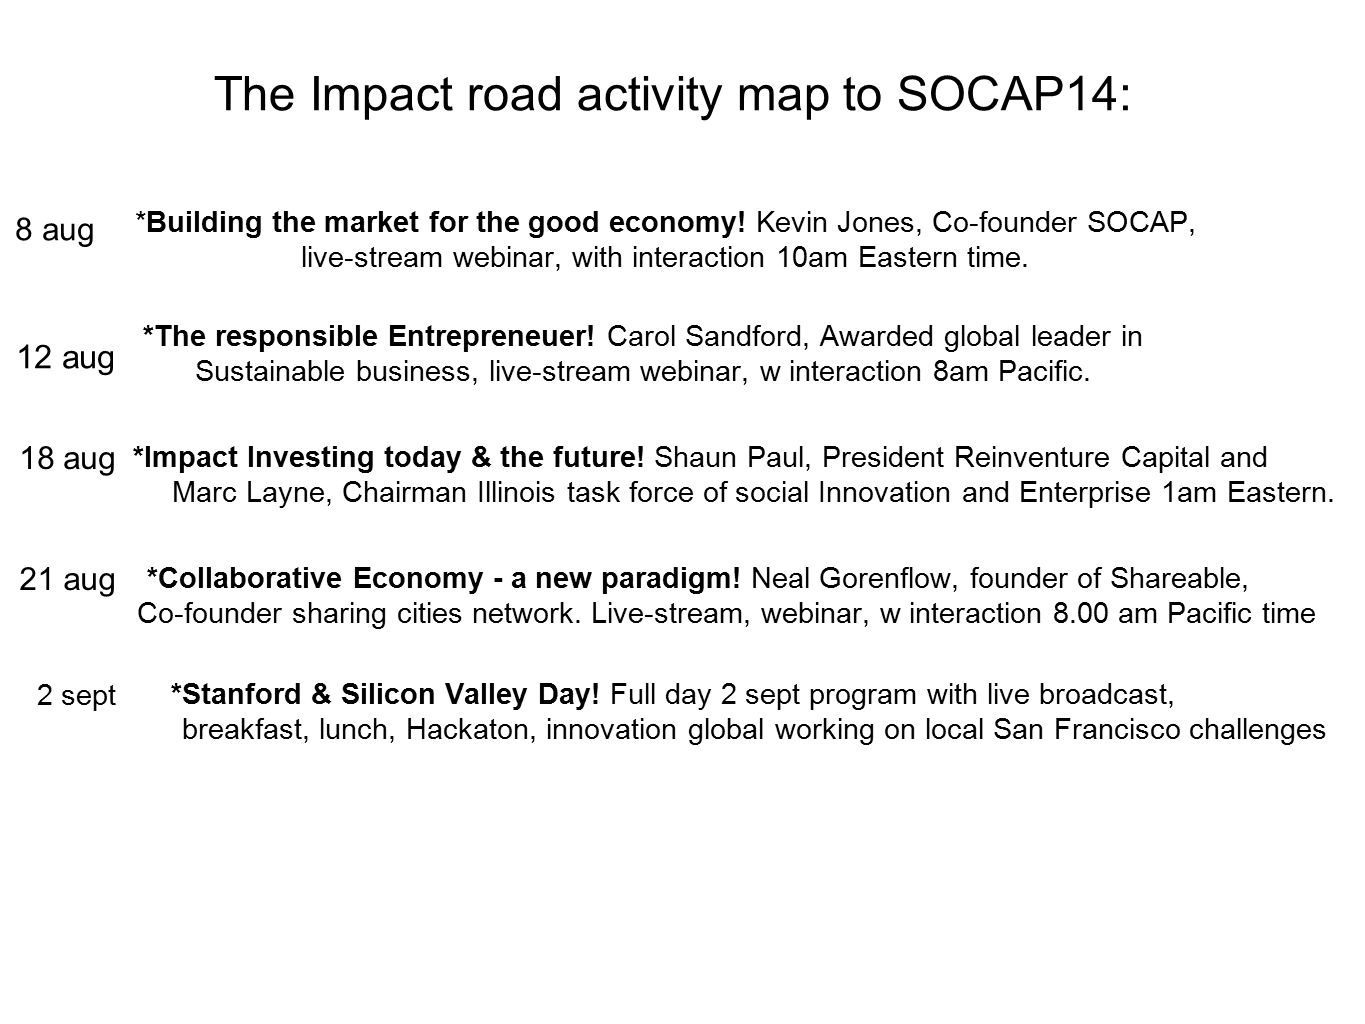 The Impact road activity map to SOCAP14: *Building the market for the good economy! Kevin Jones, Co-founder SOCAP, live-stream webinar, with interacti